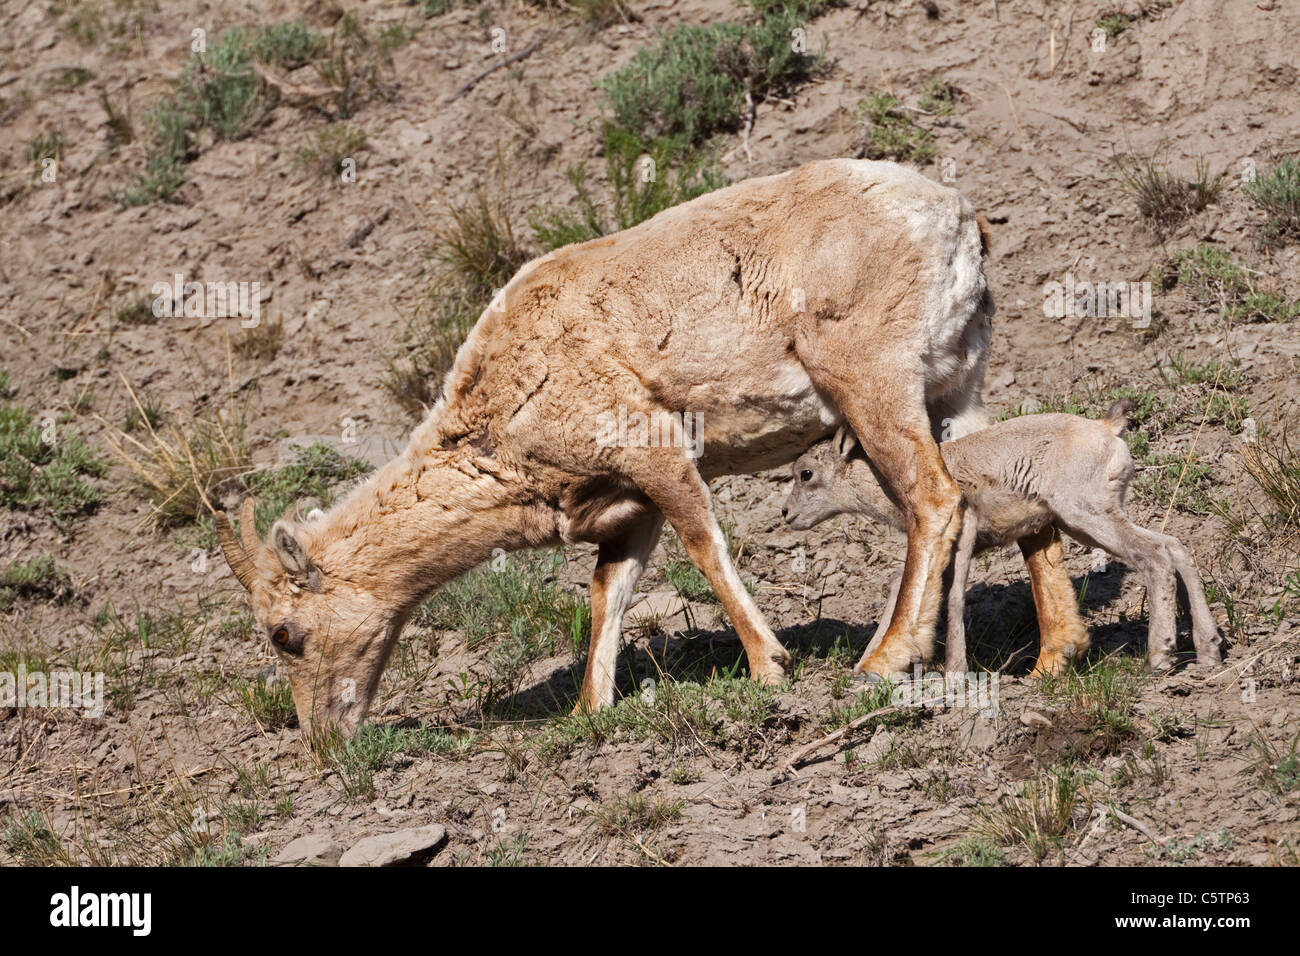 USA, Yellowstone Park, Big horn sheep (Ovis canadensis) with lamb - Stock Image